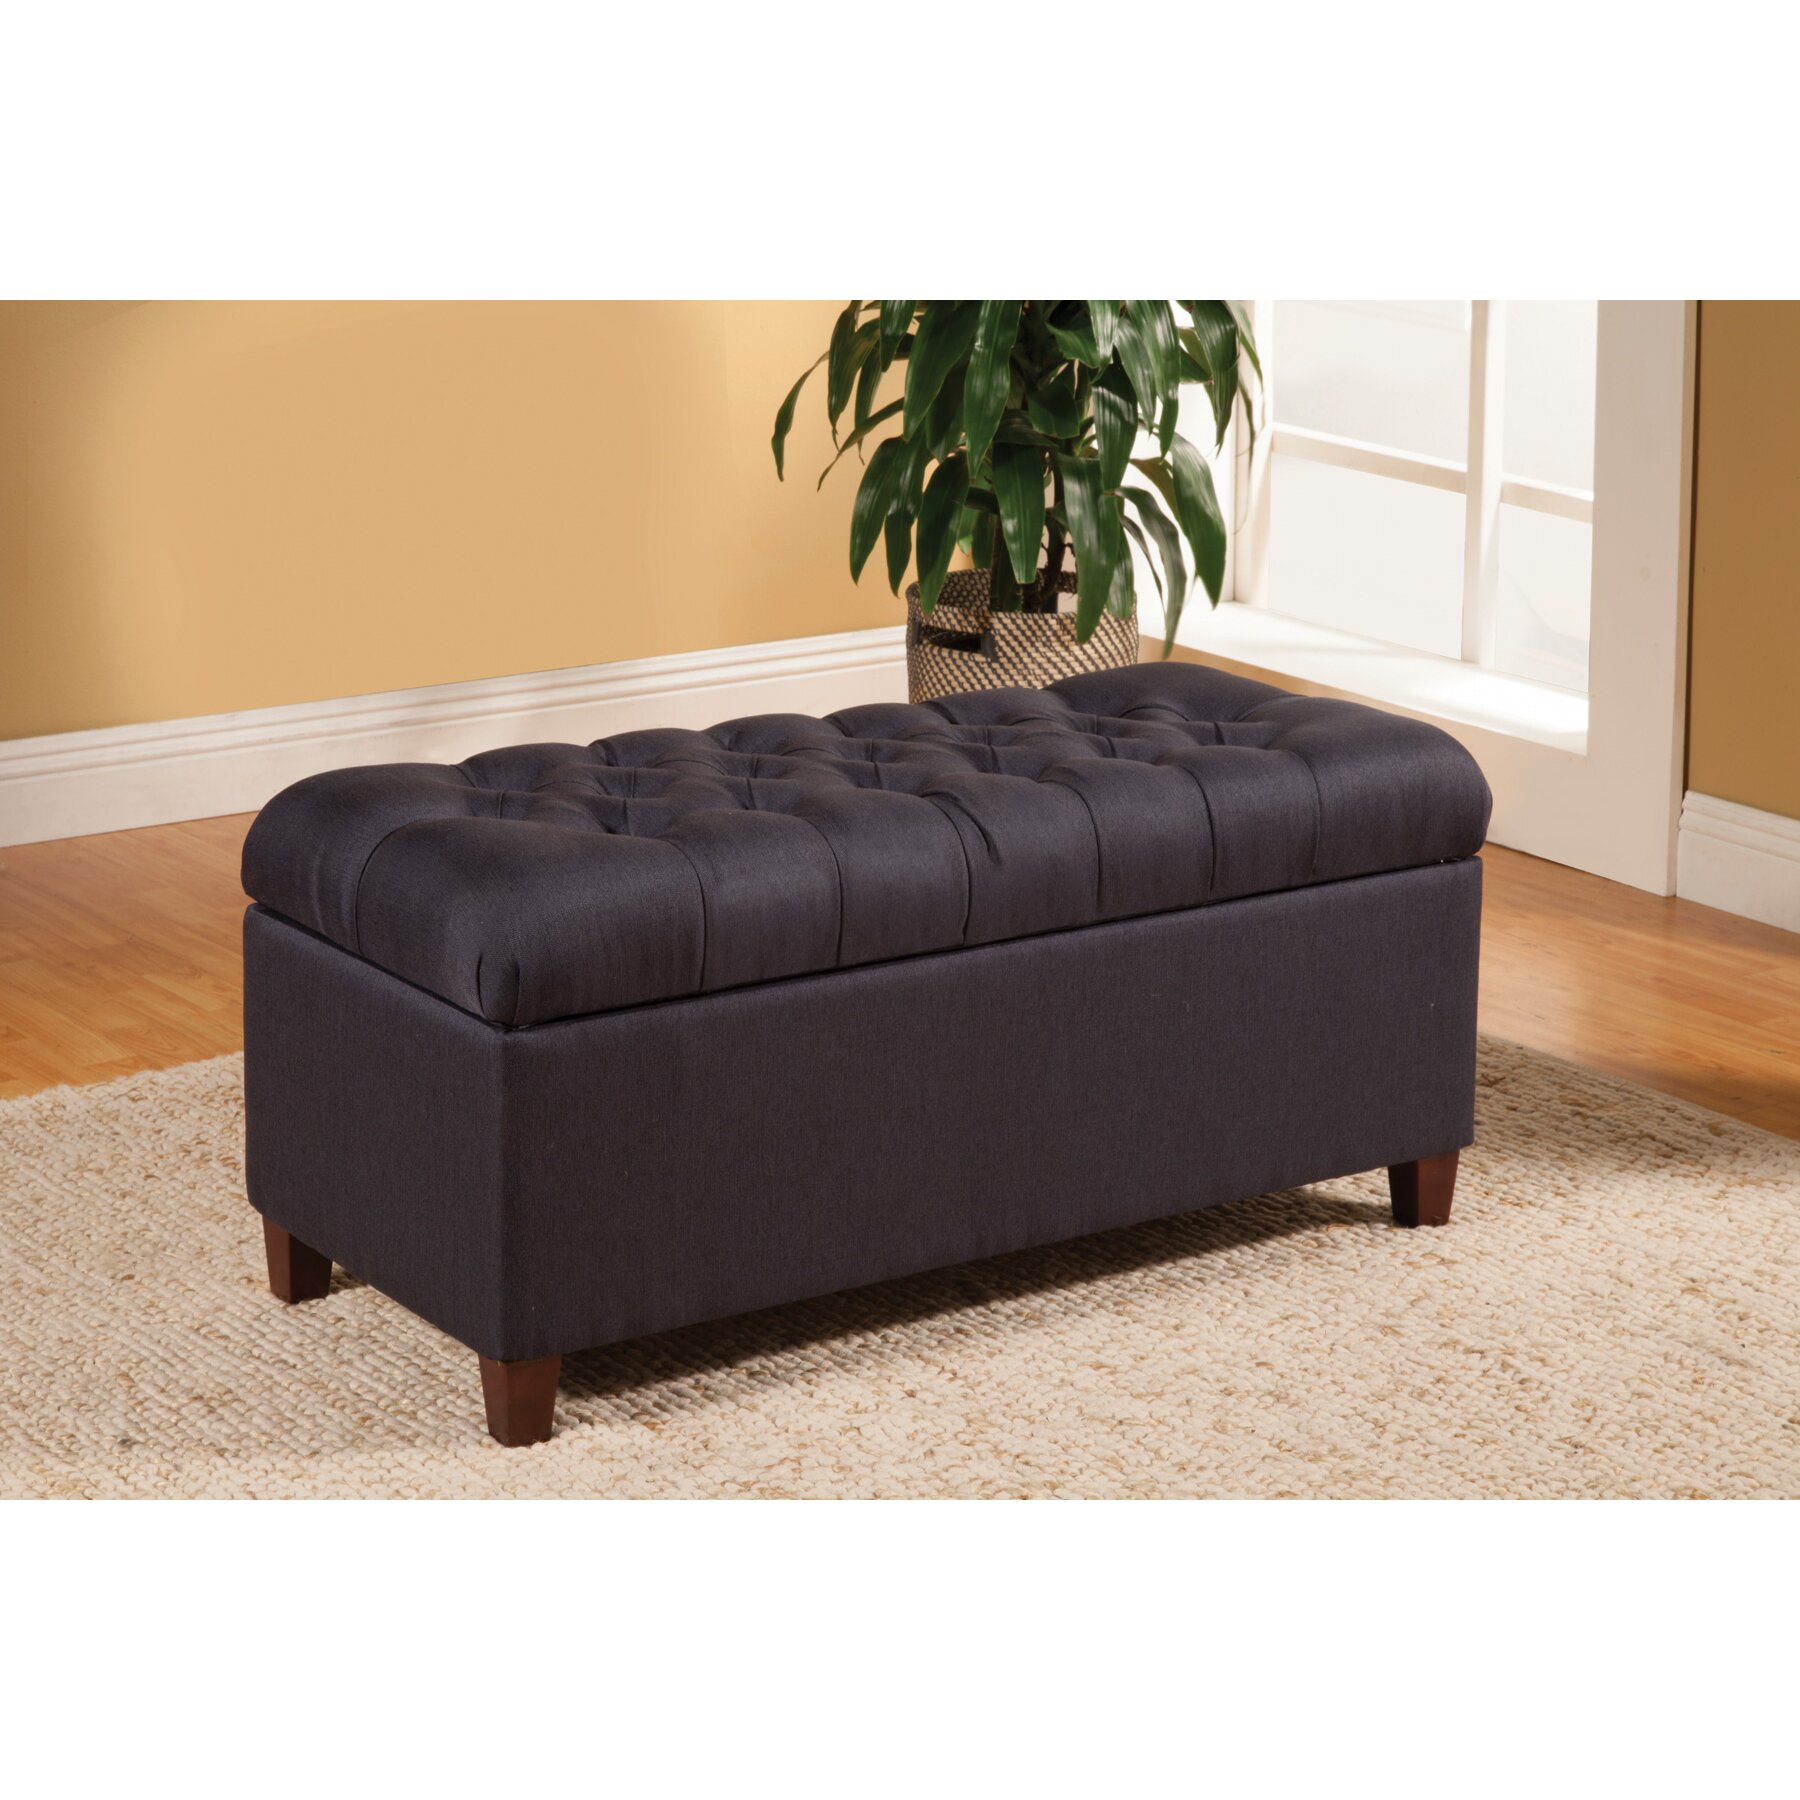 Alcott hill henderson upholstered storage bedroom bench reviews wayfair Bedroom storage bench